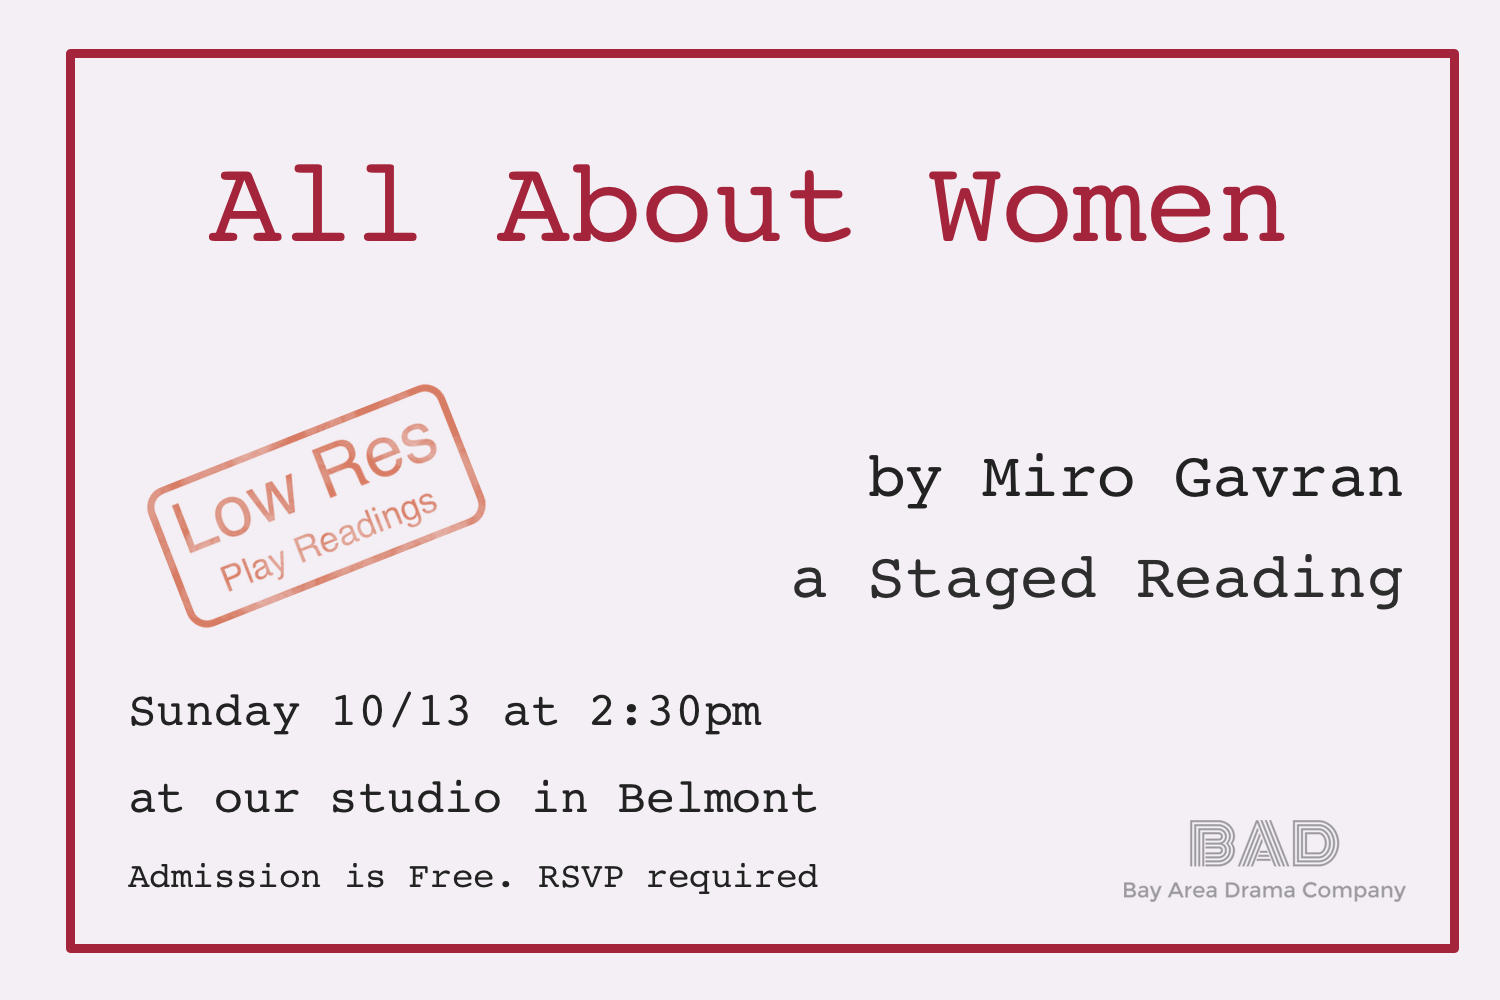 All About Women, Low Res, Staged Reading announcer.png